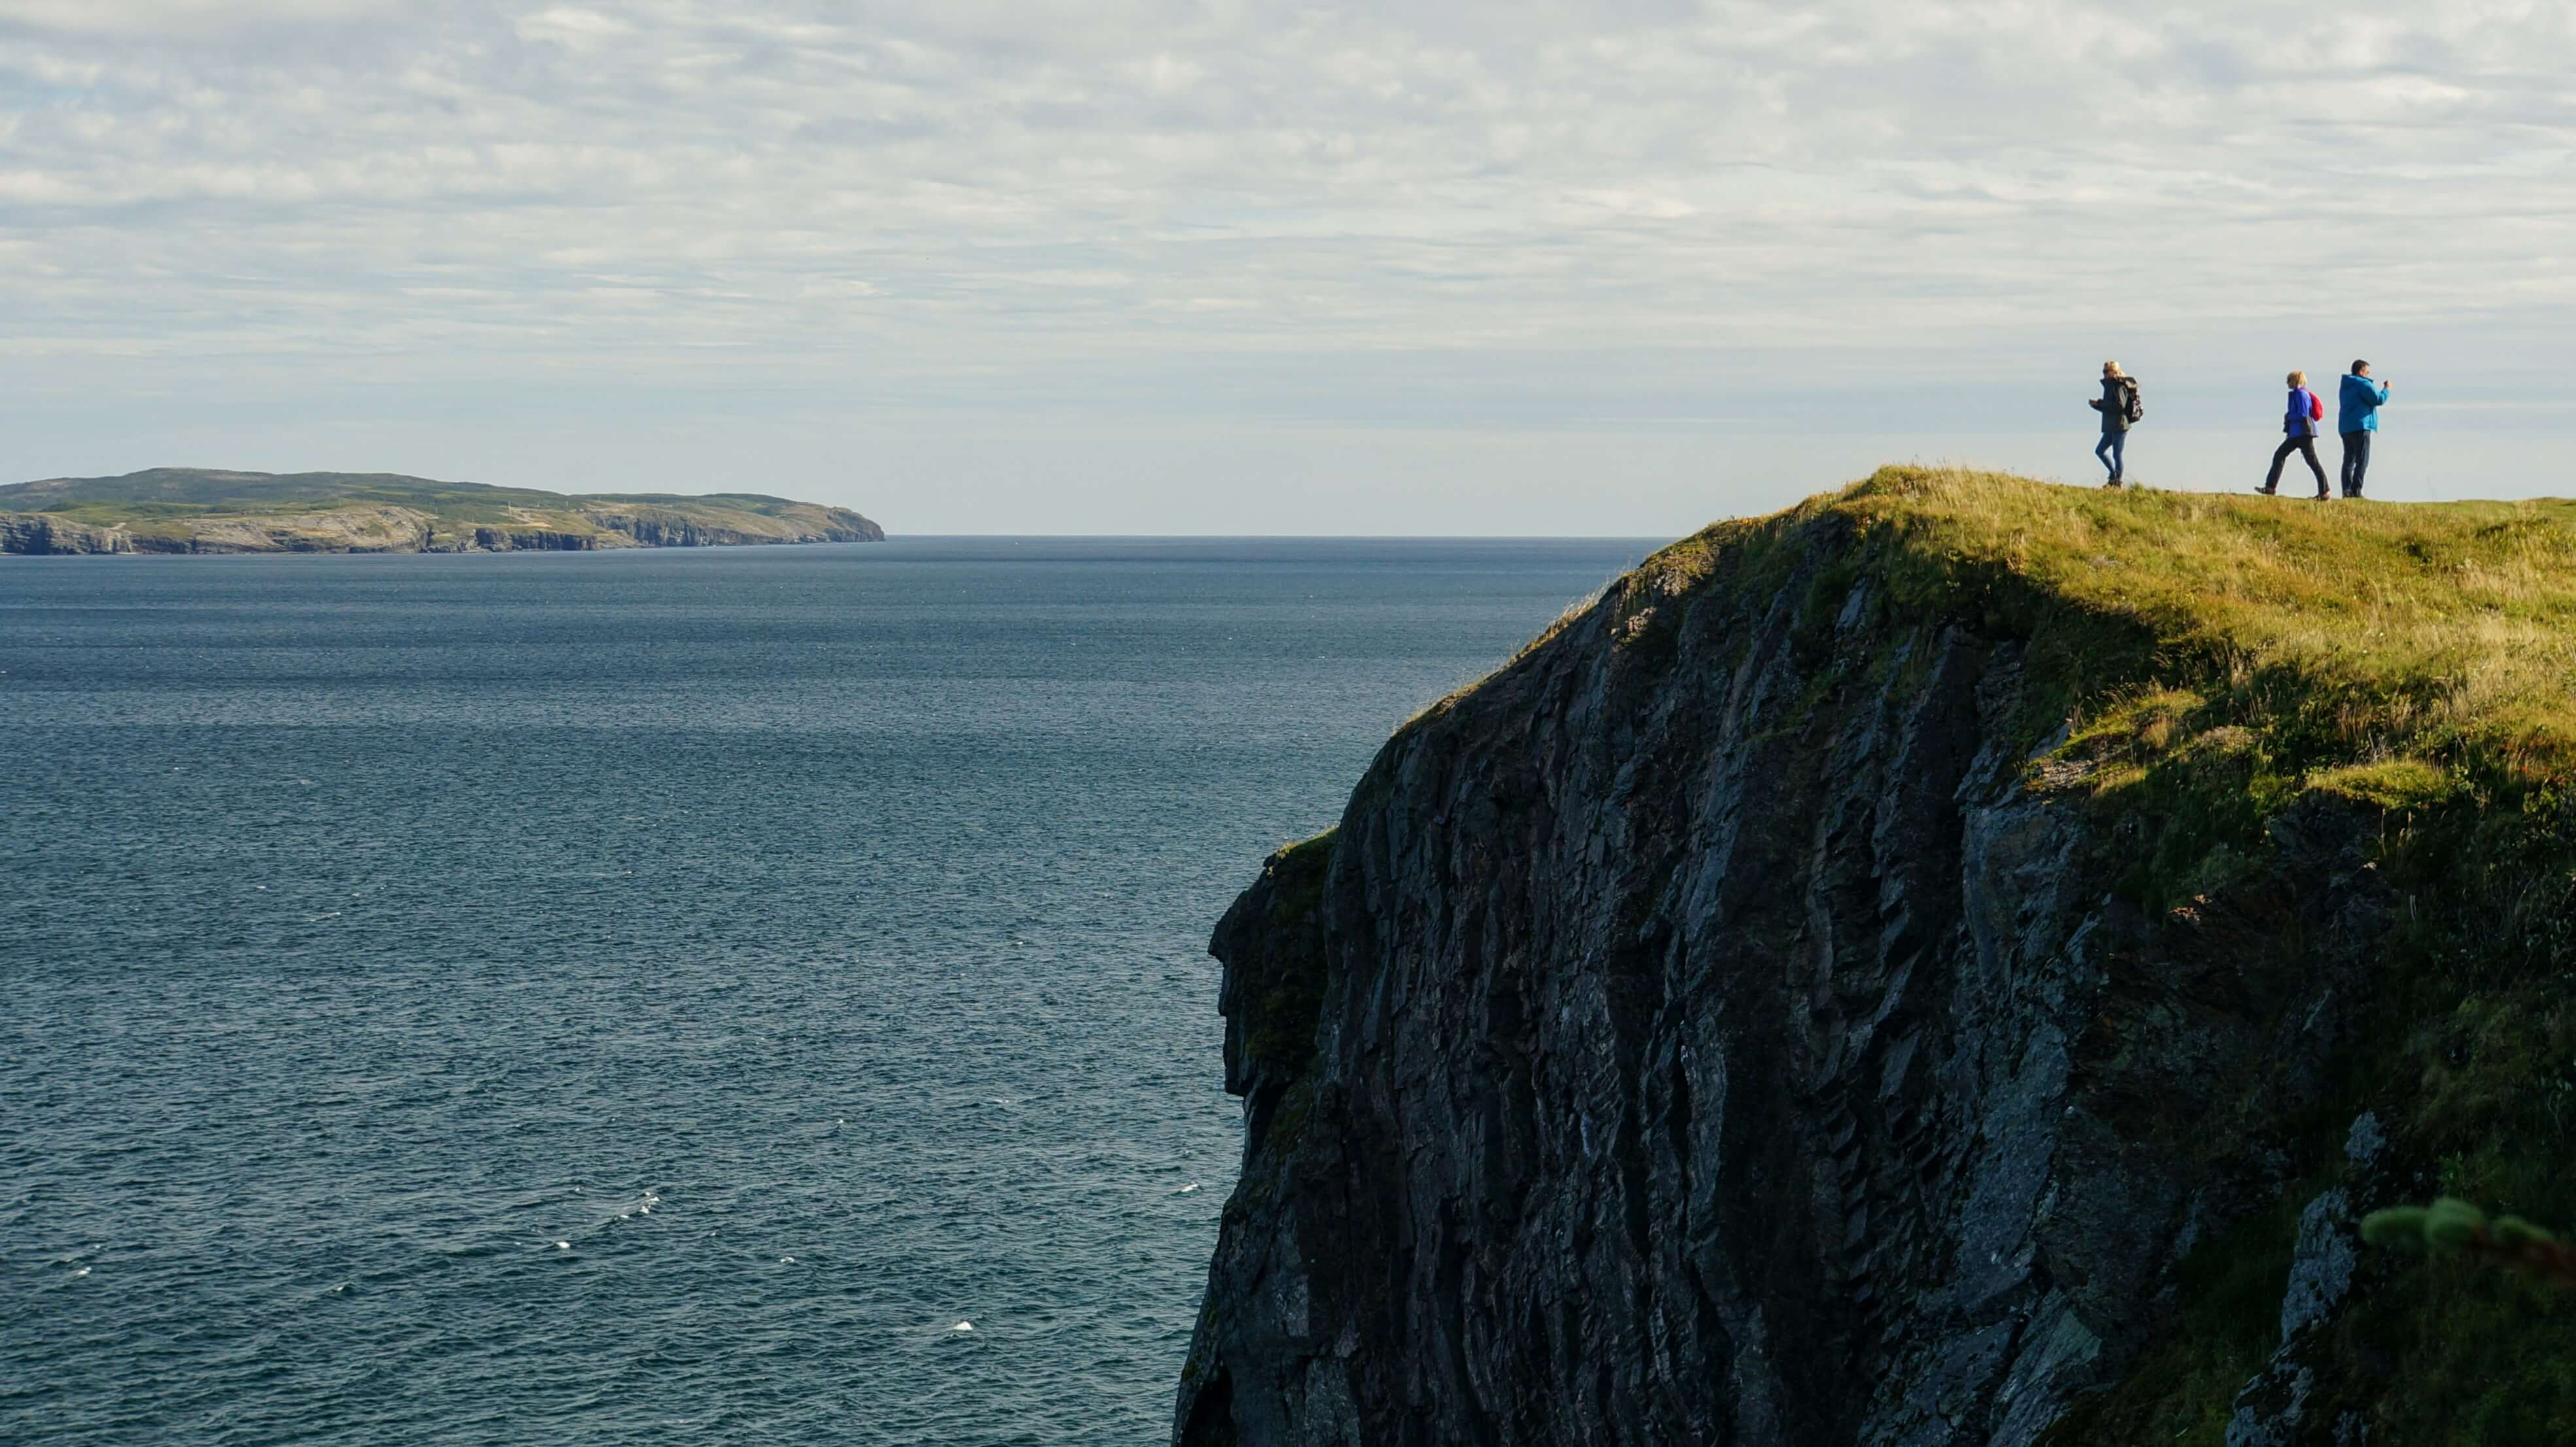 The Skerwink Trail in Port Rexton